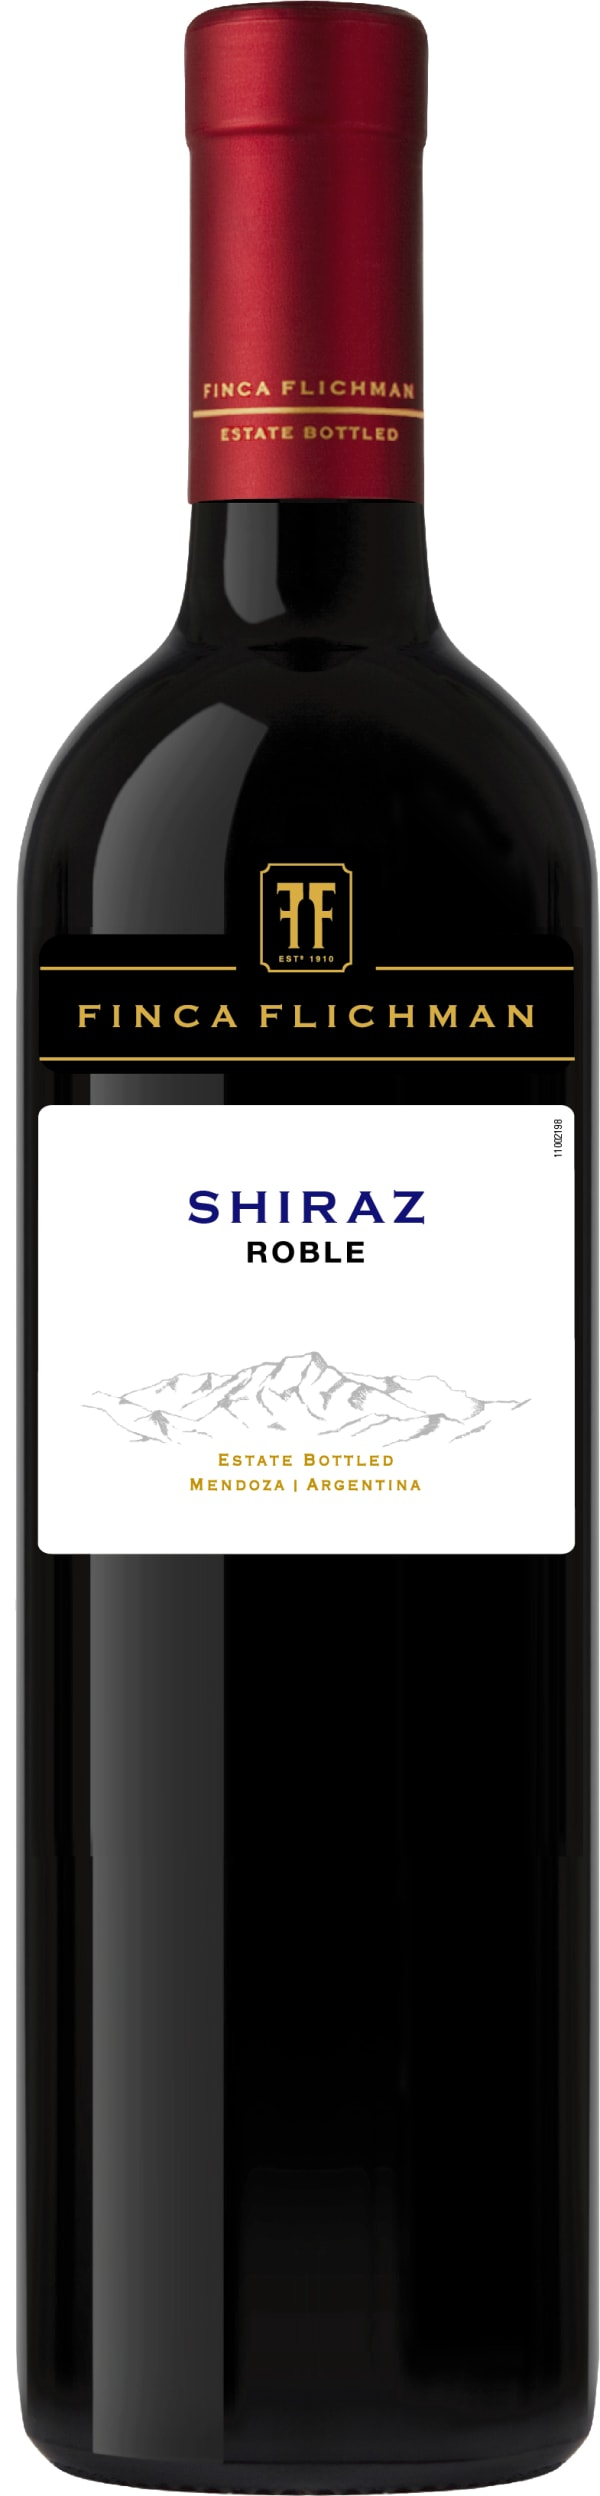 Finca Flichman Shiraz Roble 2015